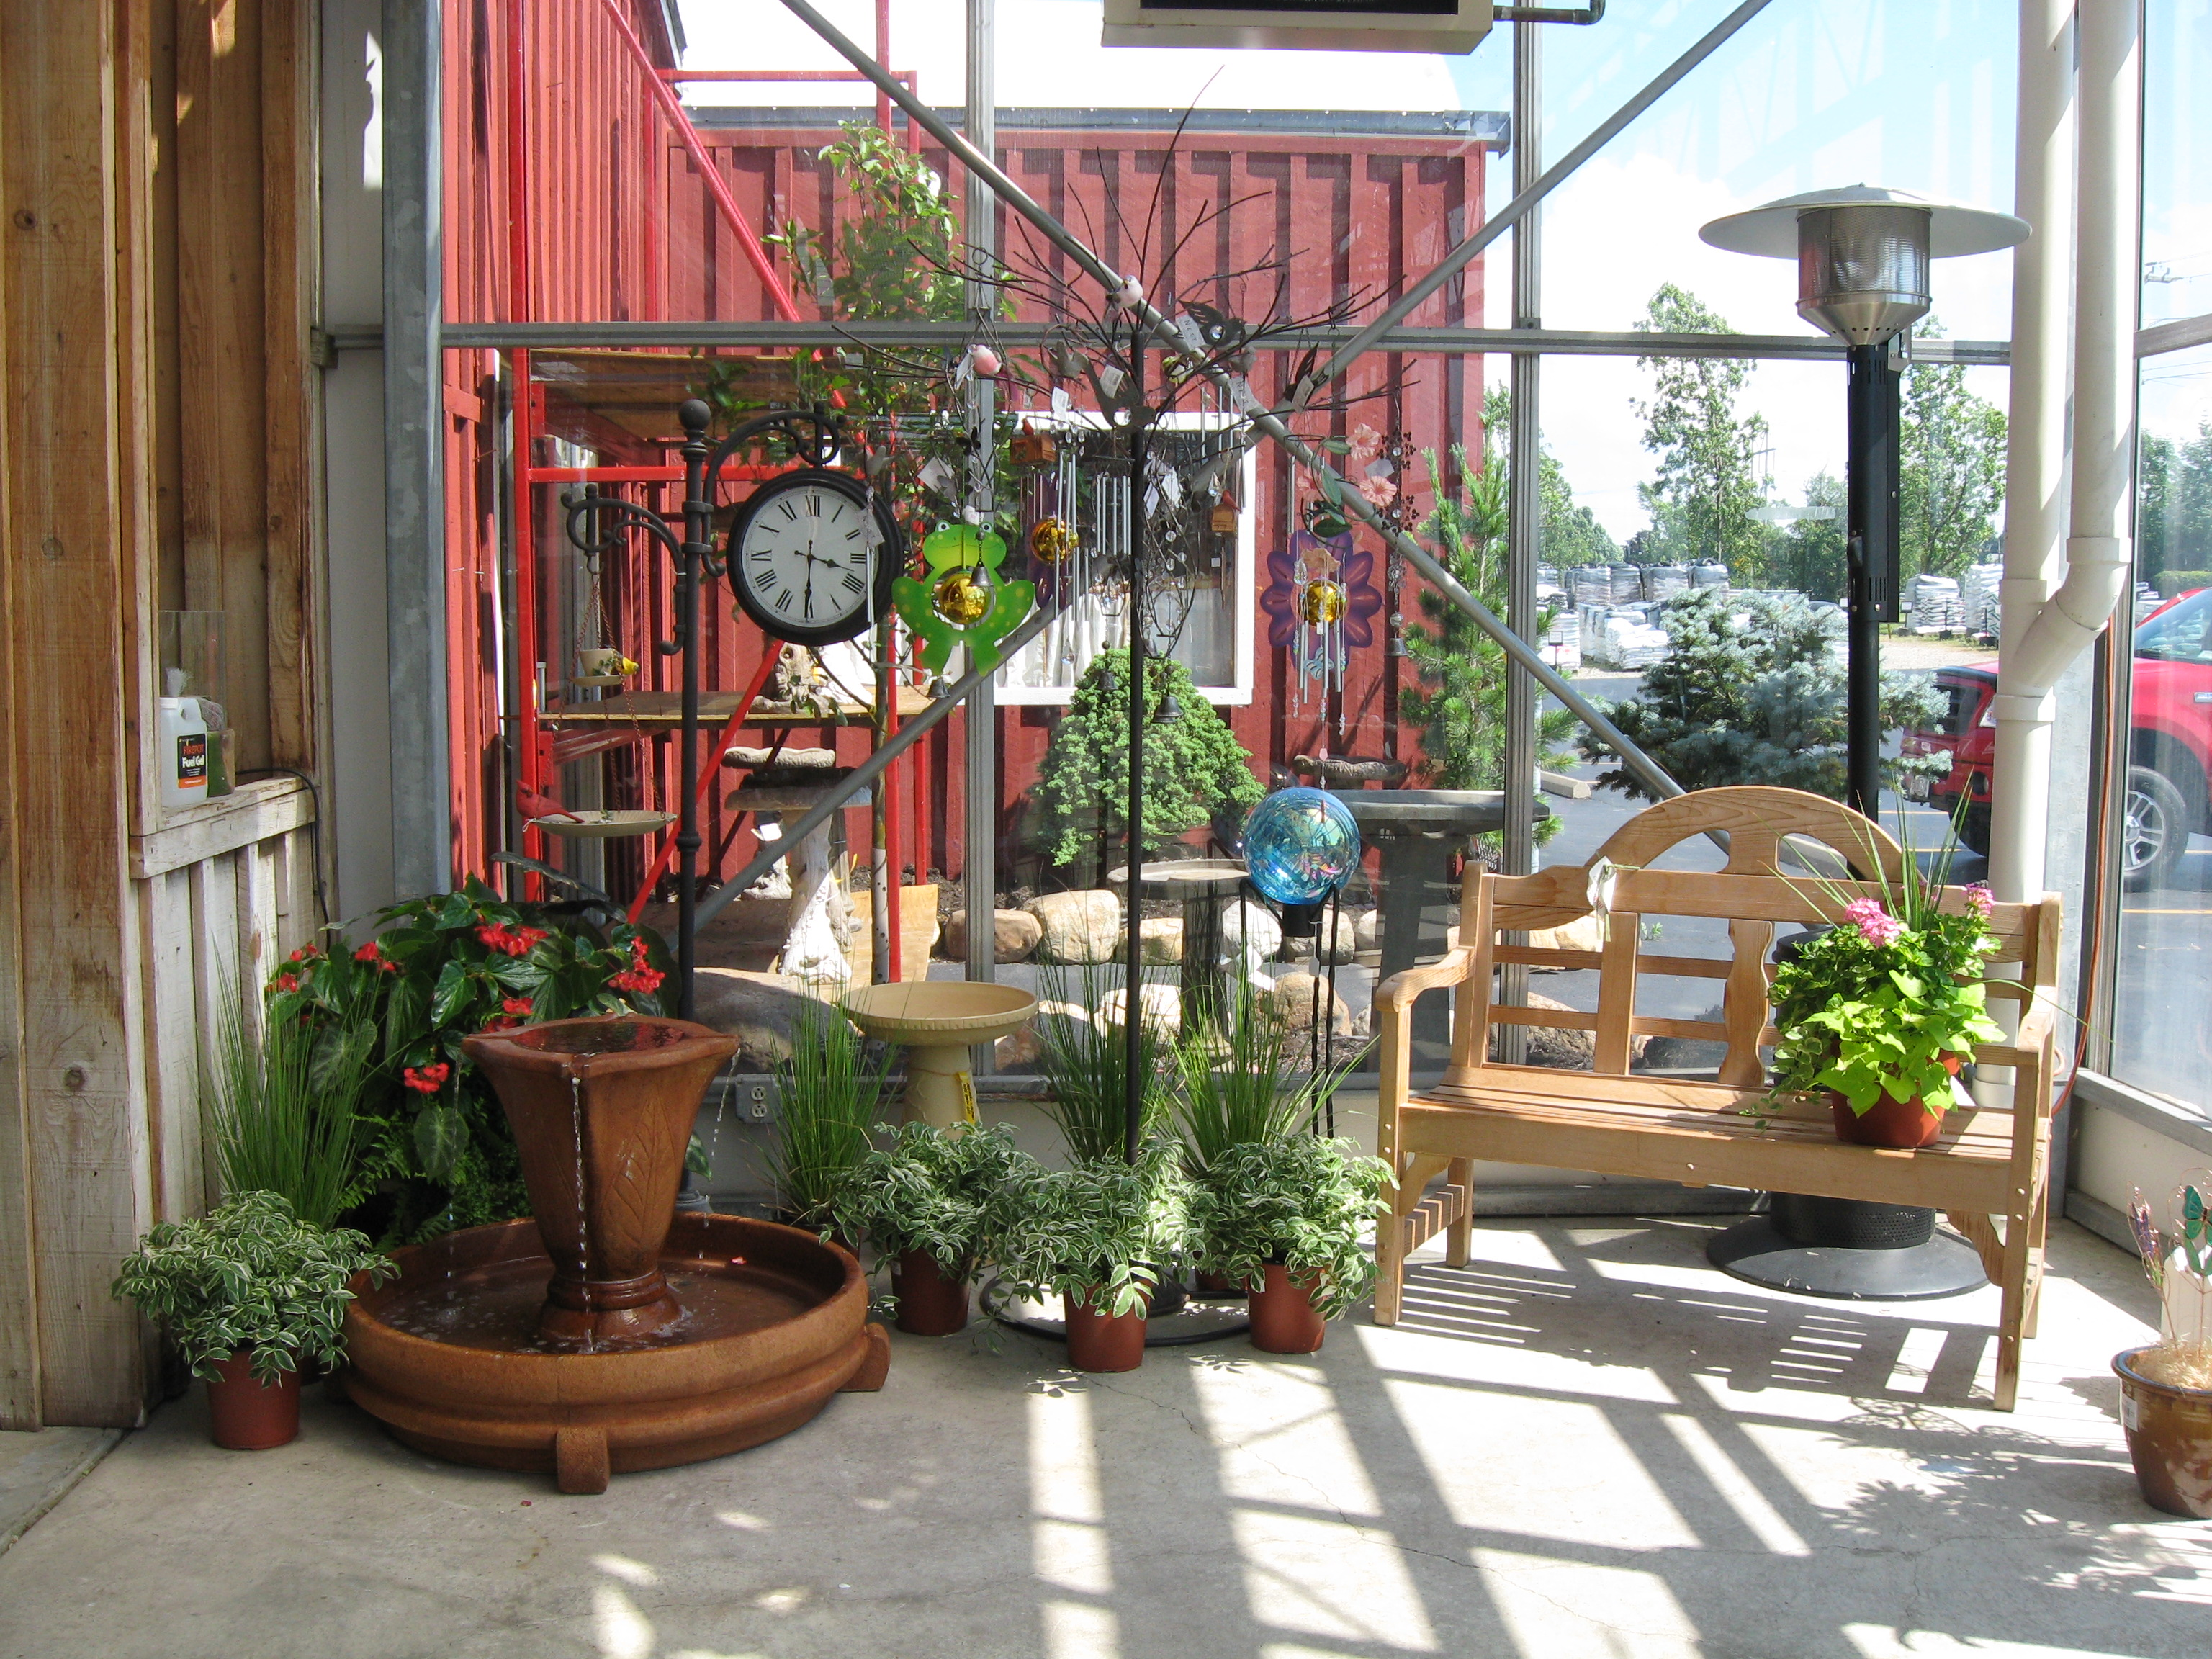 Whimsical Garden Well With Tires This Cascade Of Color And